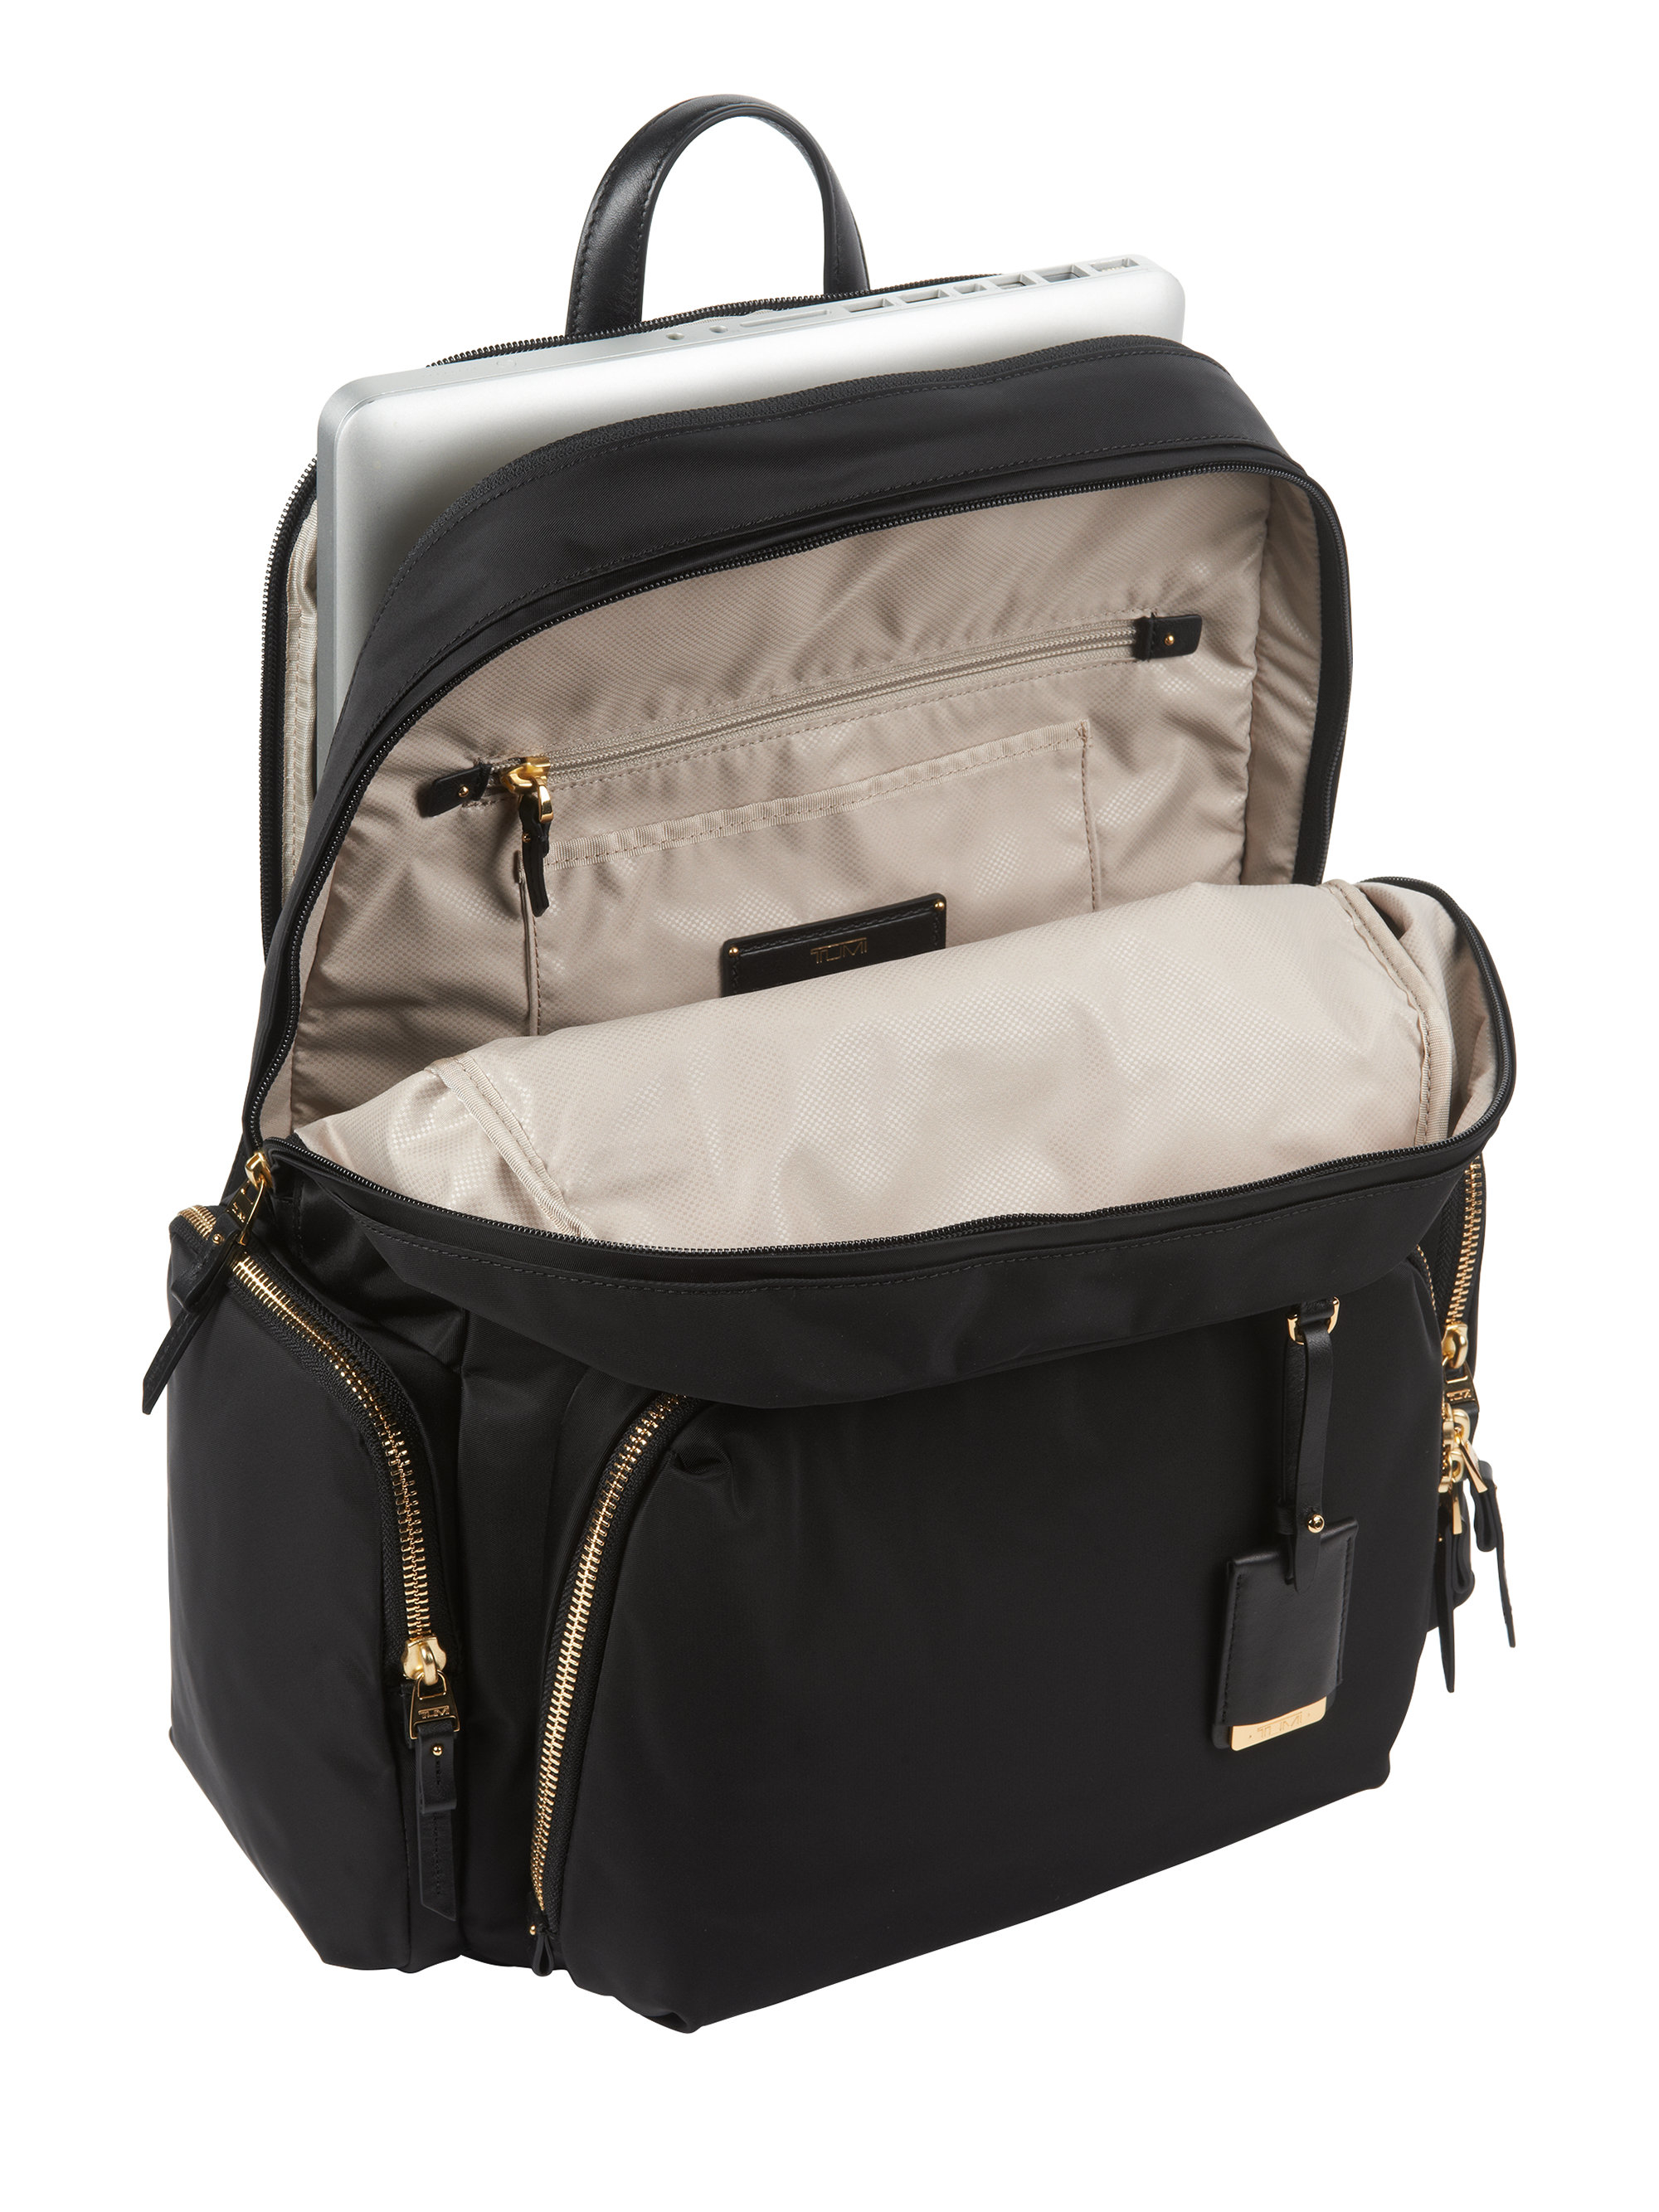 Tumi Voyageur Calais Backpack In Black For Men Lyst